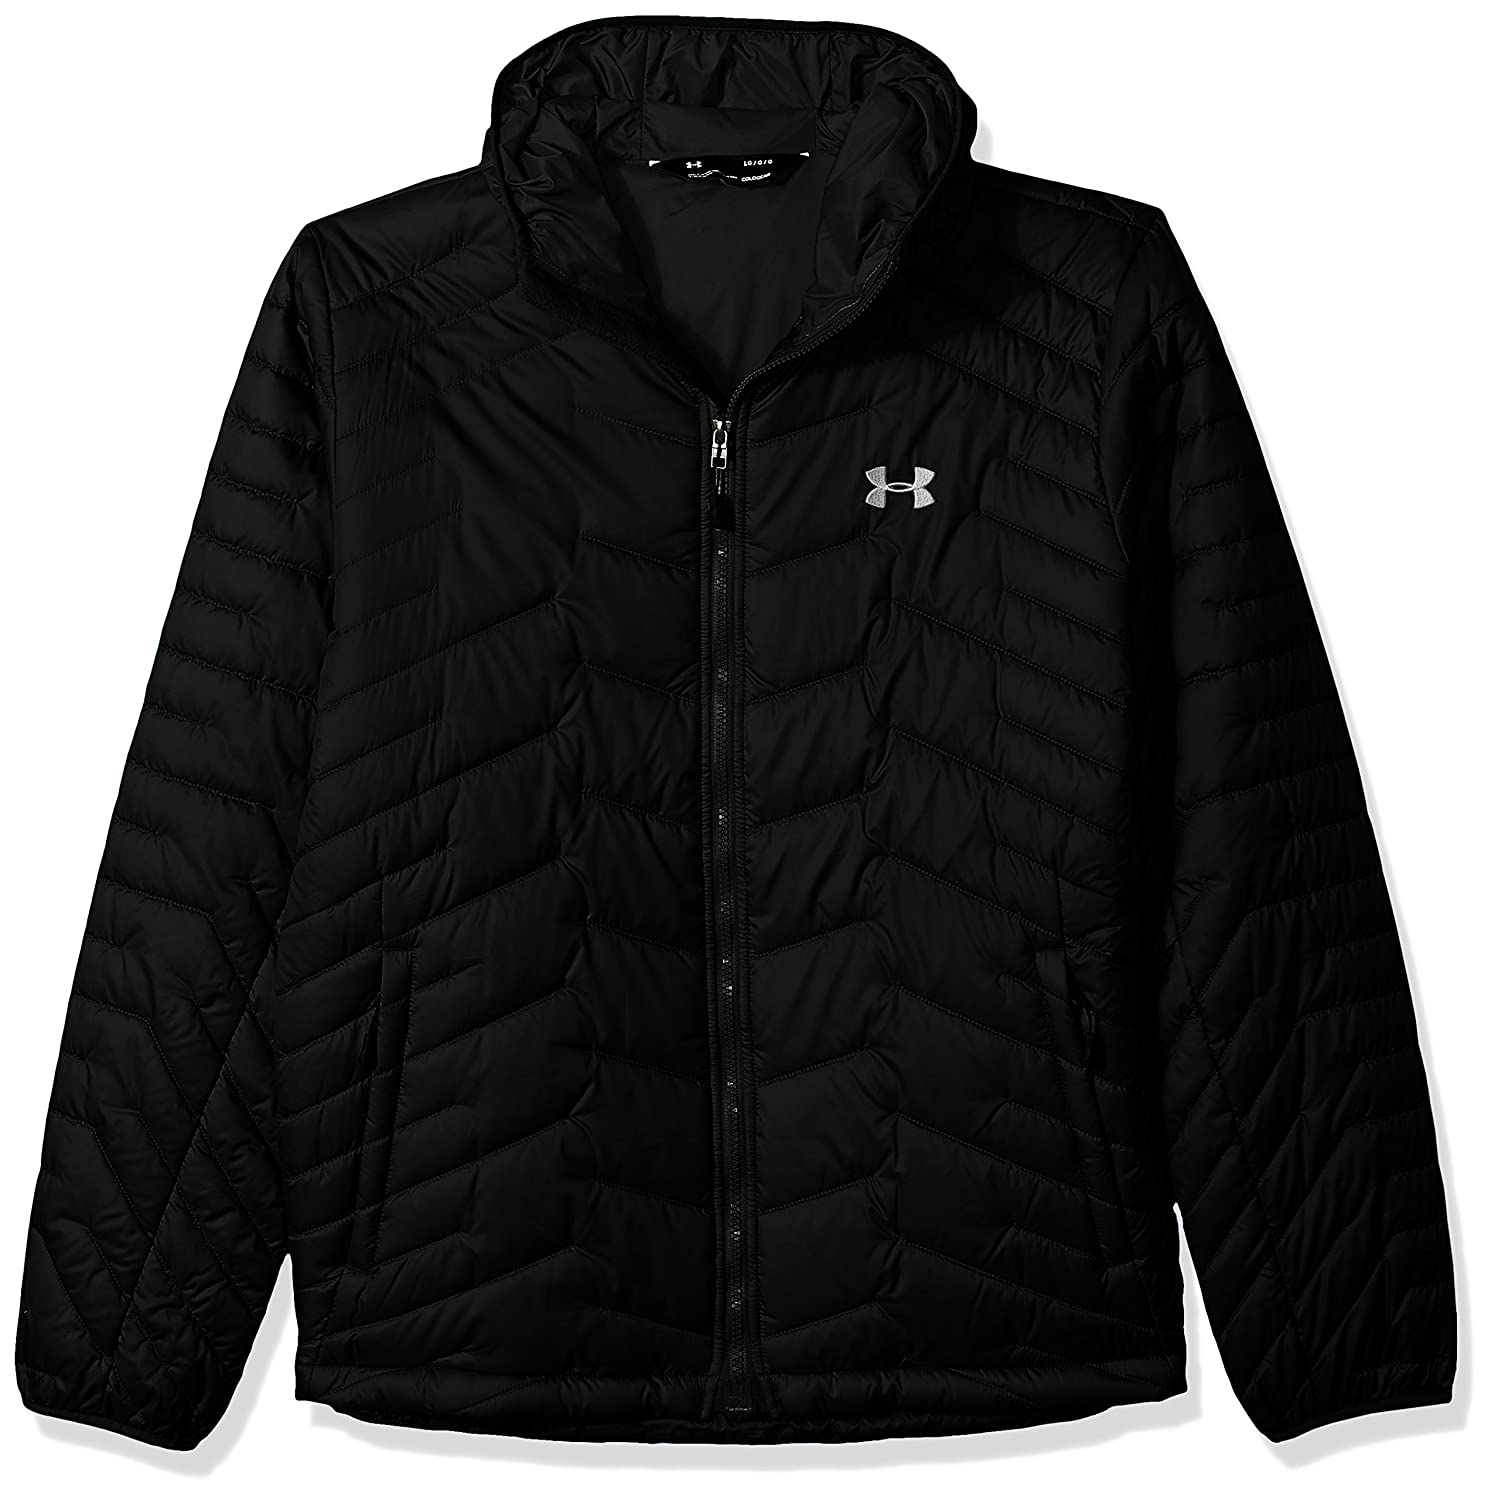 Under Armour Men's ColdGear Reactor Hooded Jacket Under Armour Outdoors